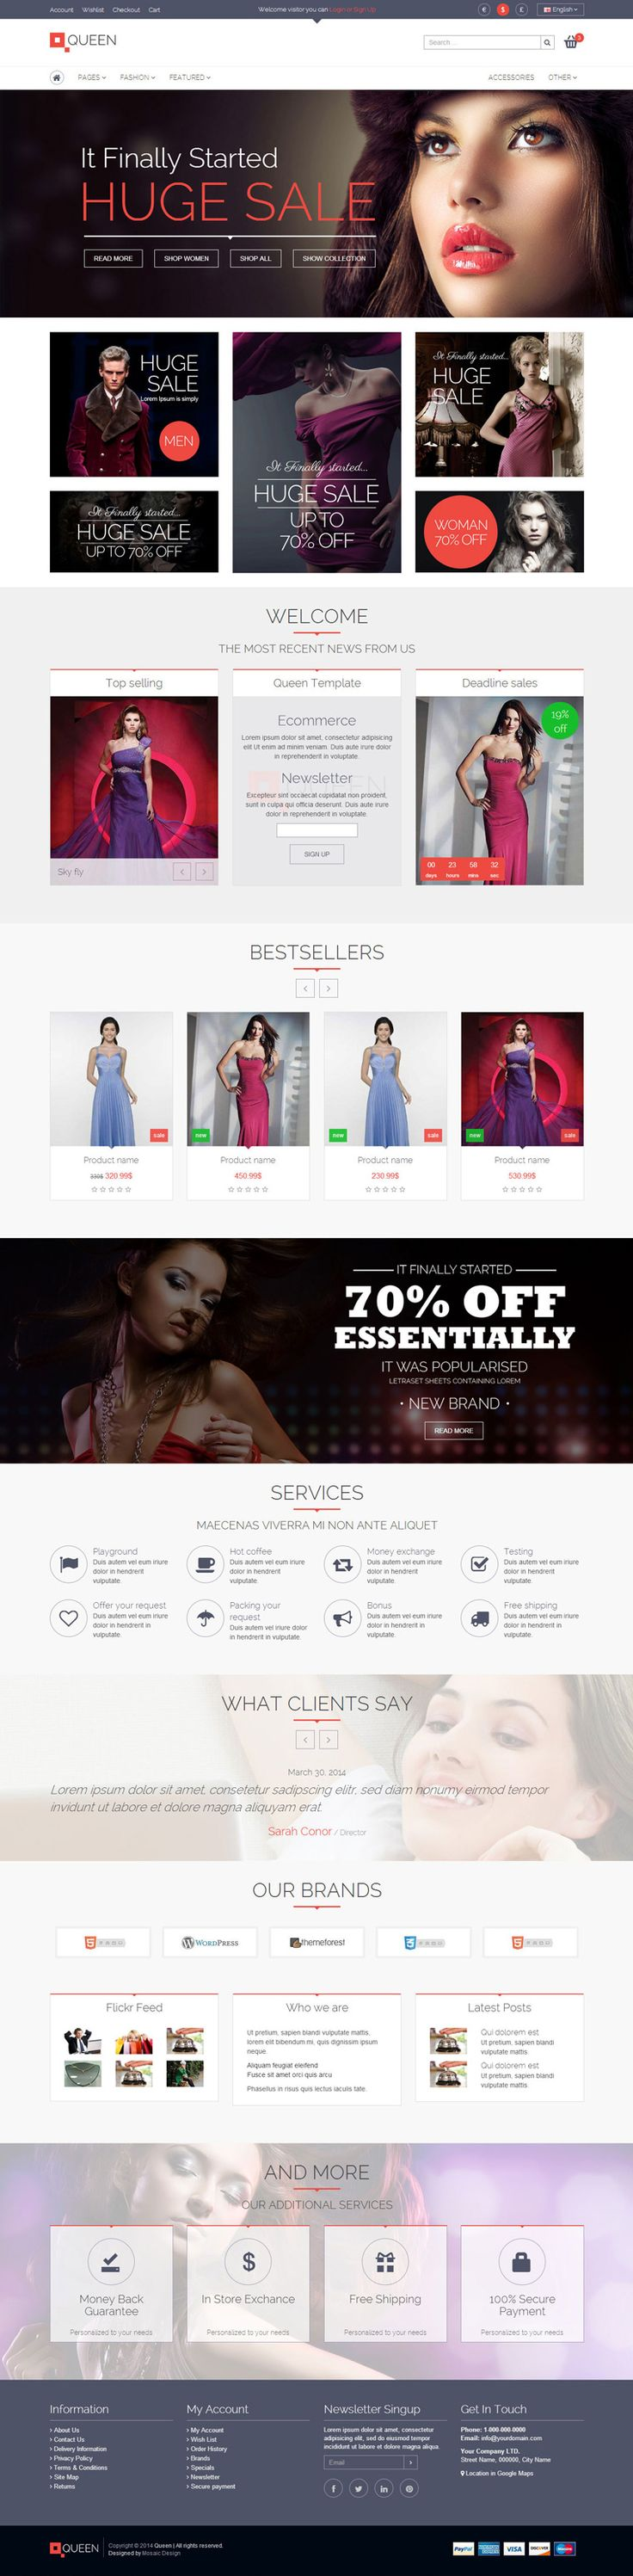 eCommerce, #fashion, clean, simple, block | Inspiration DE